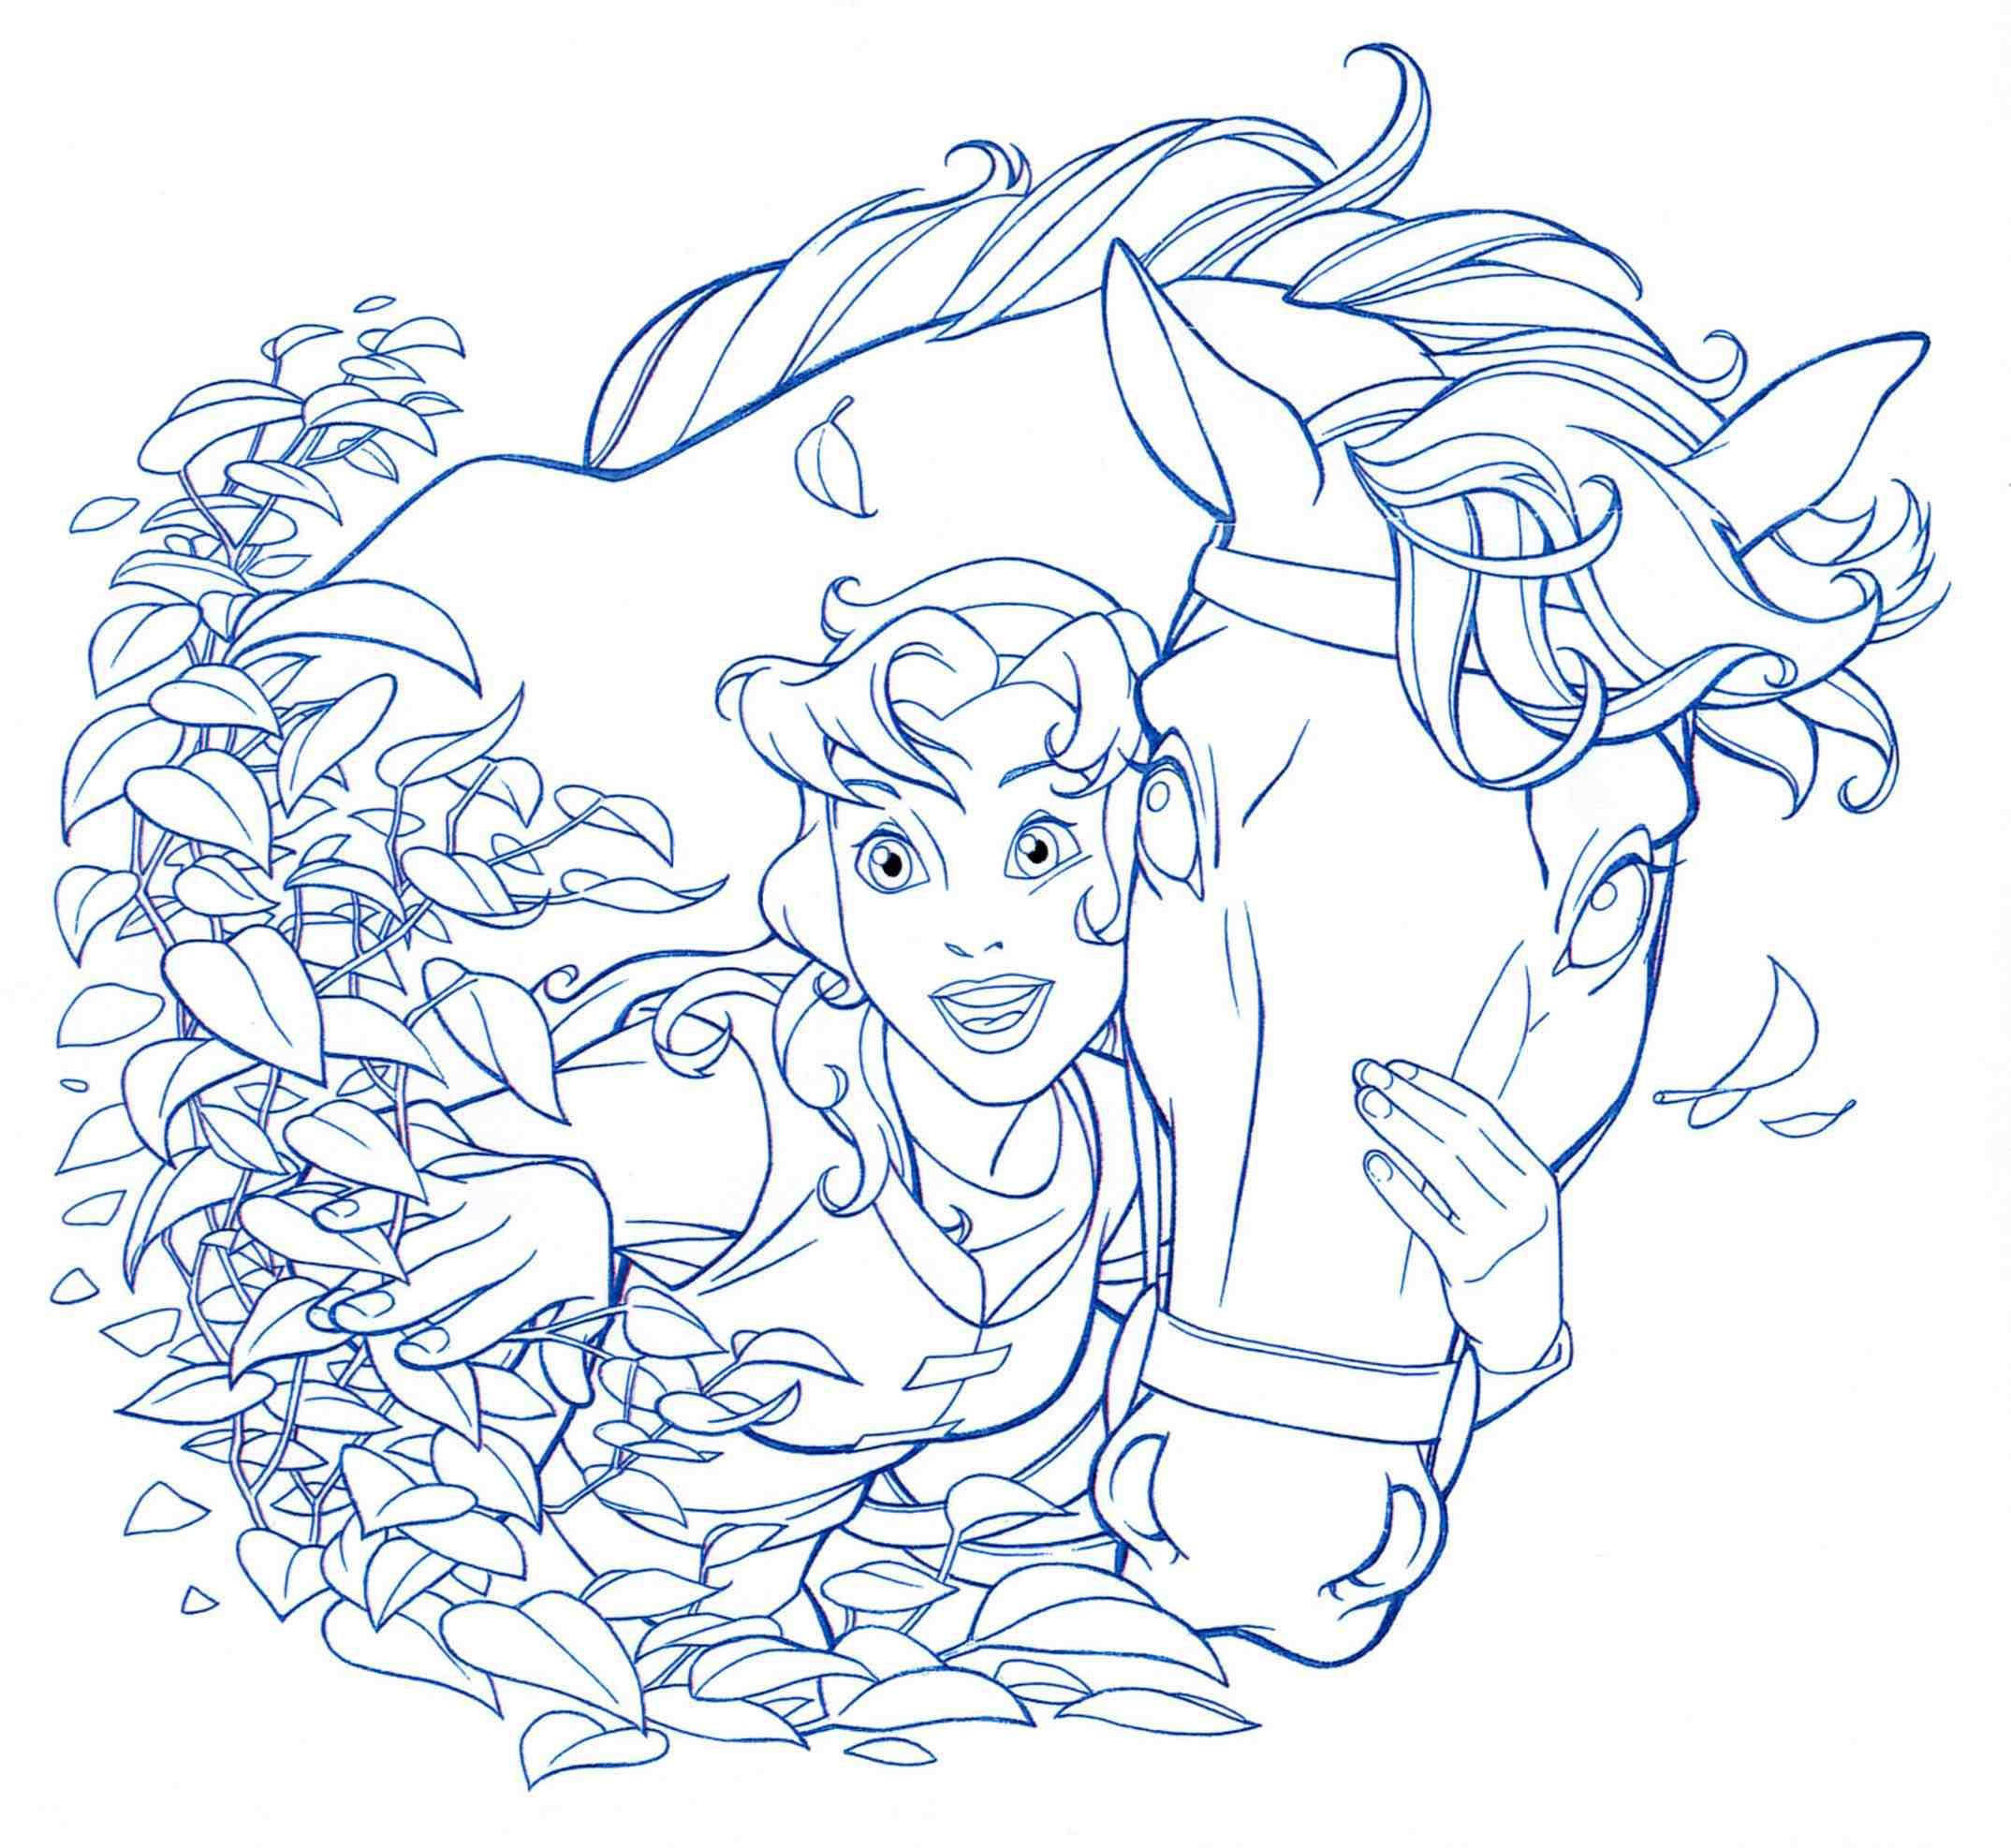 Peek A Boo By Jerome K Moore Horse Coloring Pages Cute Disney Drawings Quest For Camelot